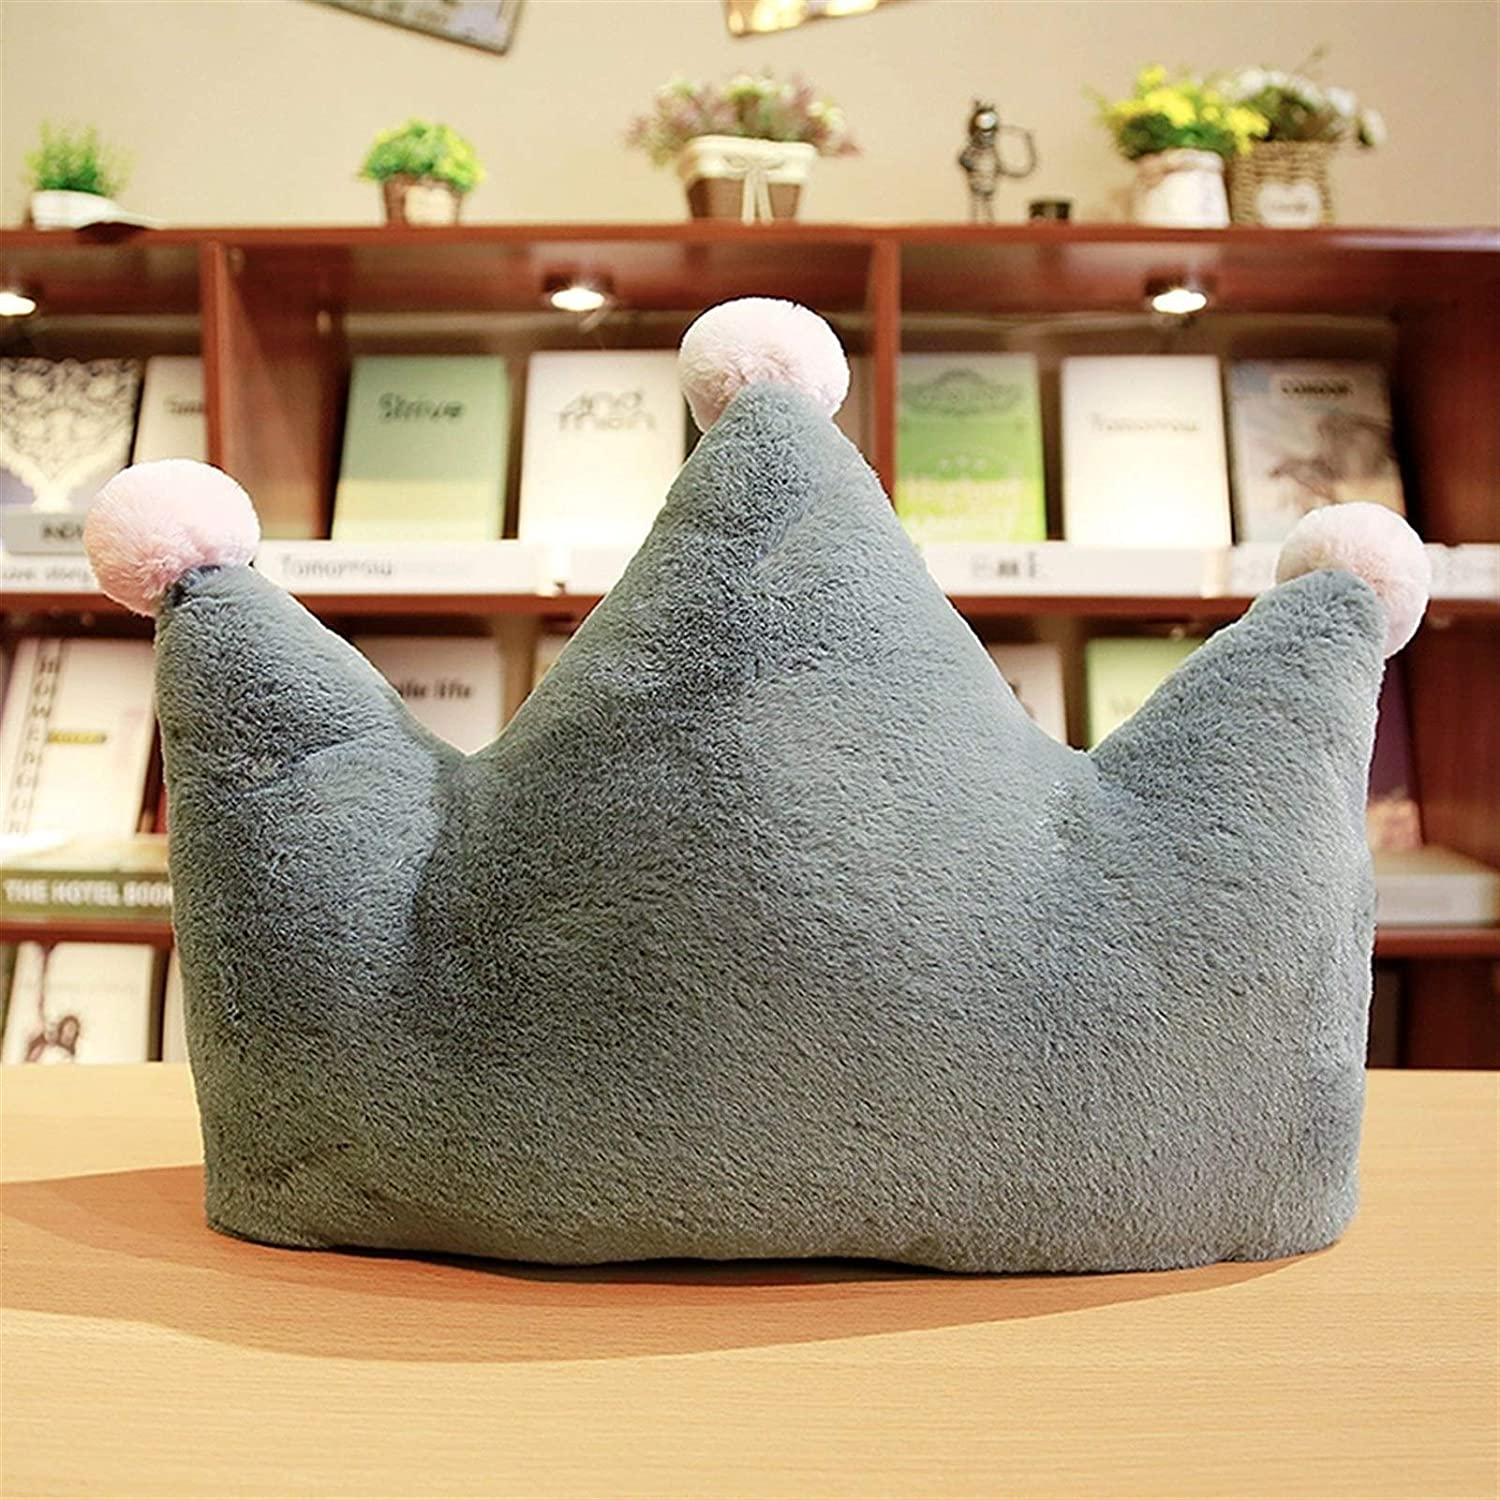 YYGQING Pillow Sofa Cushion Removable Toy Washable and Max 67% OFF Pil Plush price